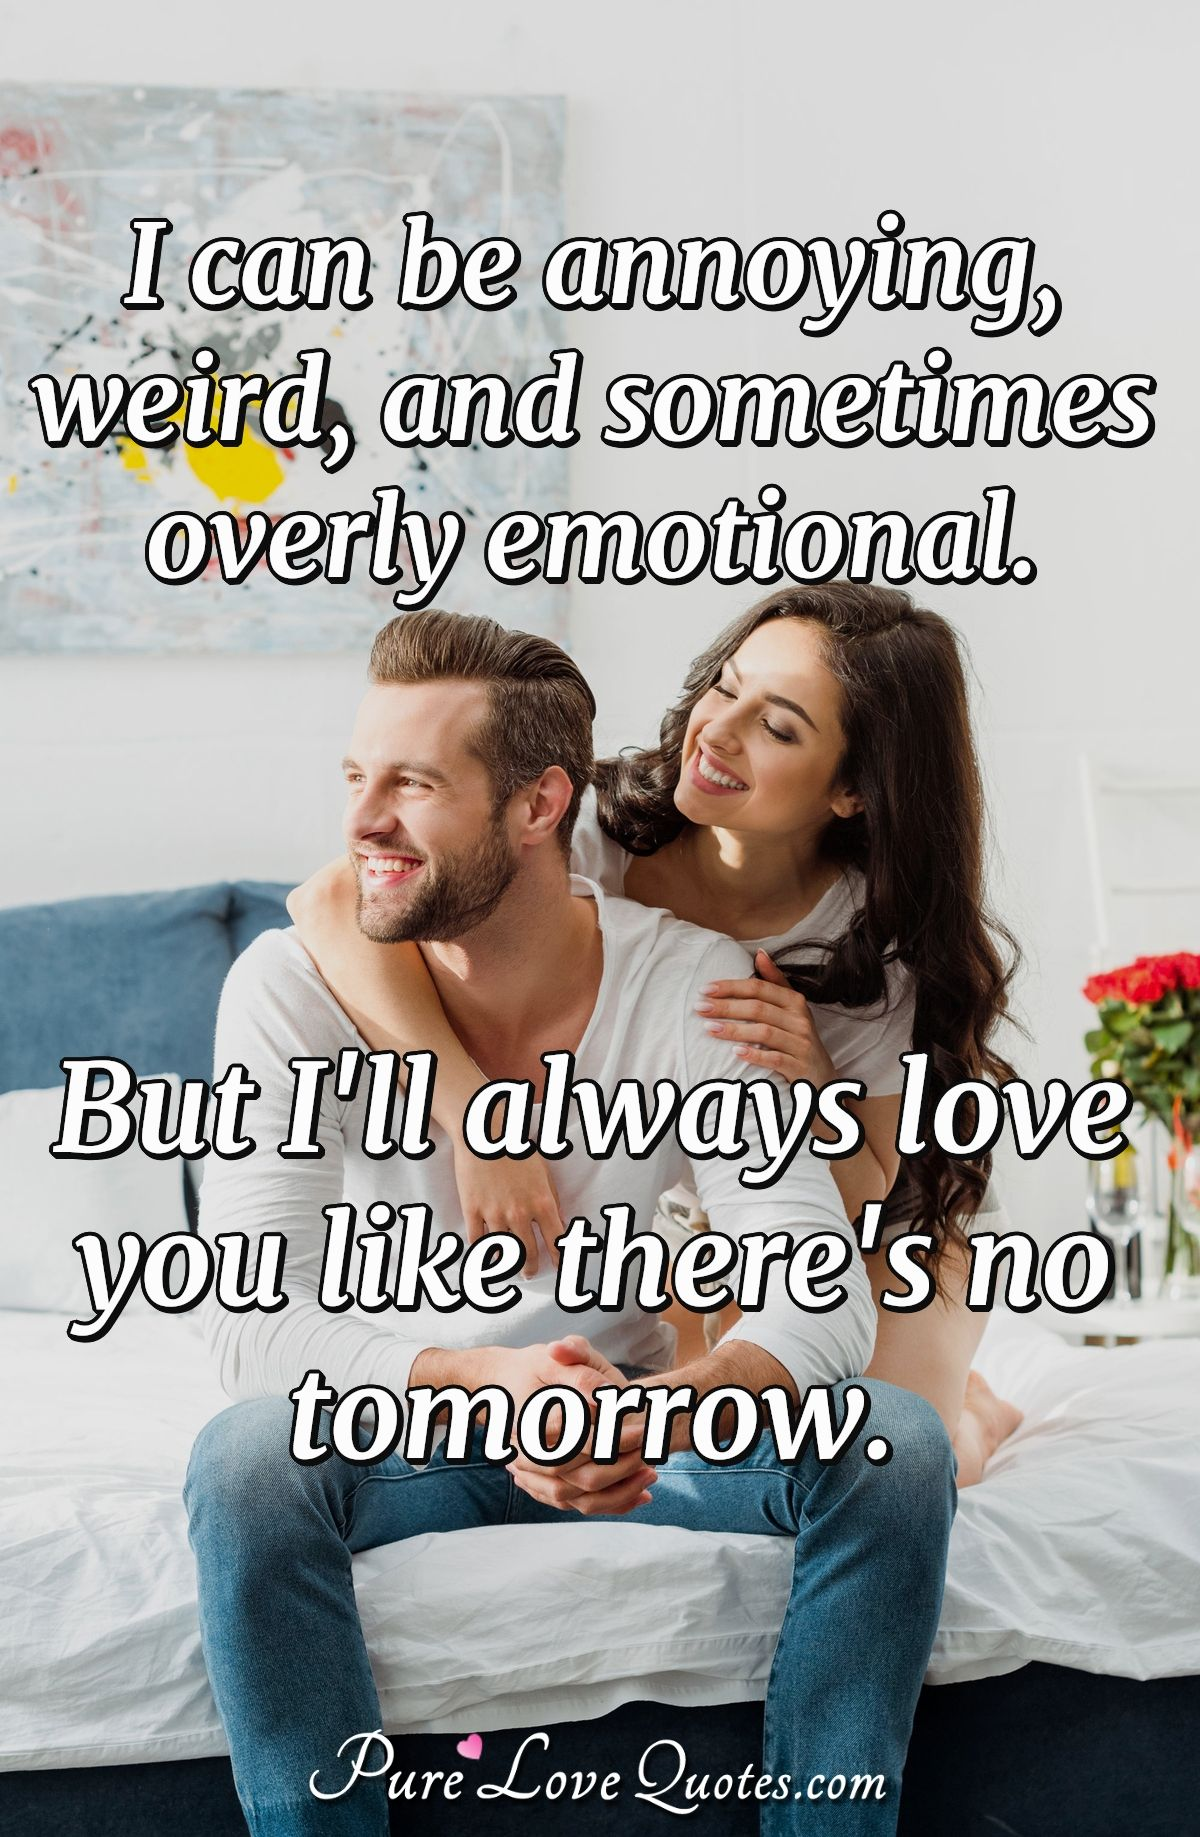 Annoyed Quotes : annoyed, quotes, Annoying,, Weird,, Sometimes, Overly, Emotional., Always, PureLoveQuotes